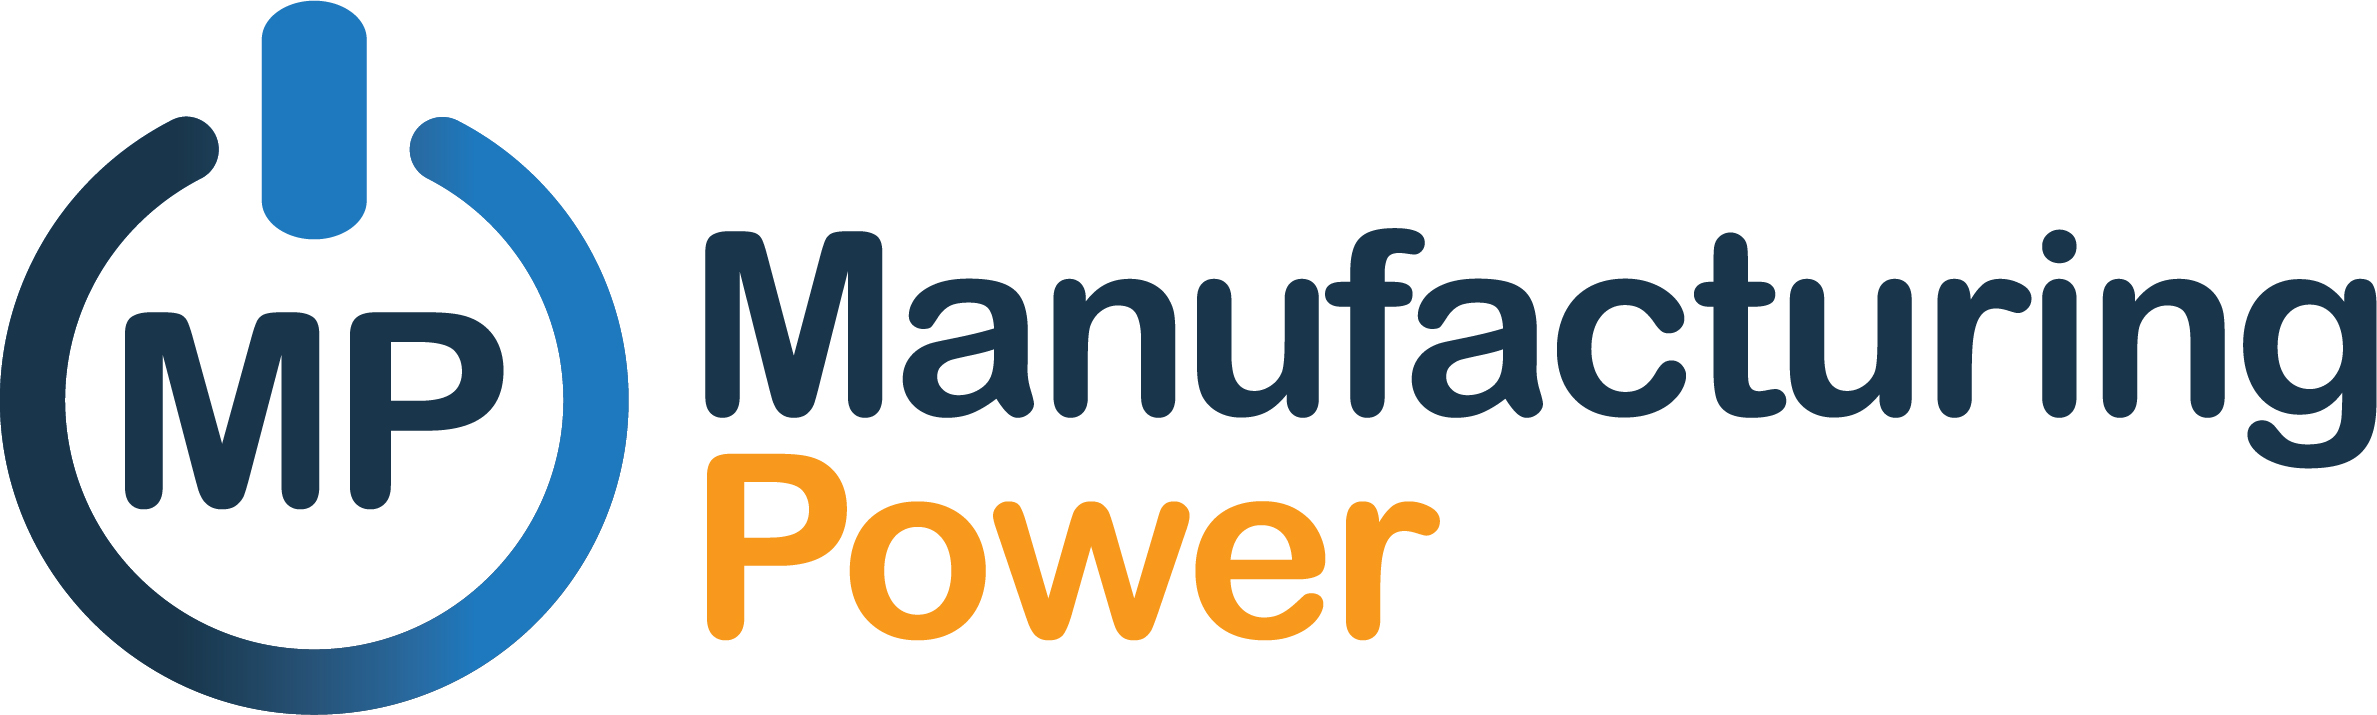 The Manufacturing Report Reviews Merits of ManufacturingPower for Pricing Advantages to Small Manufacturers